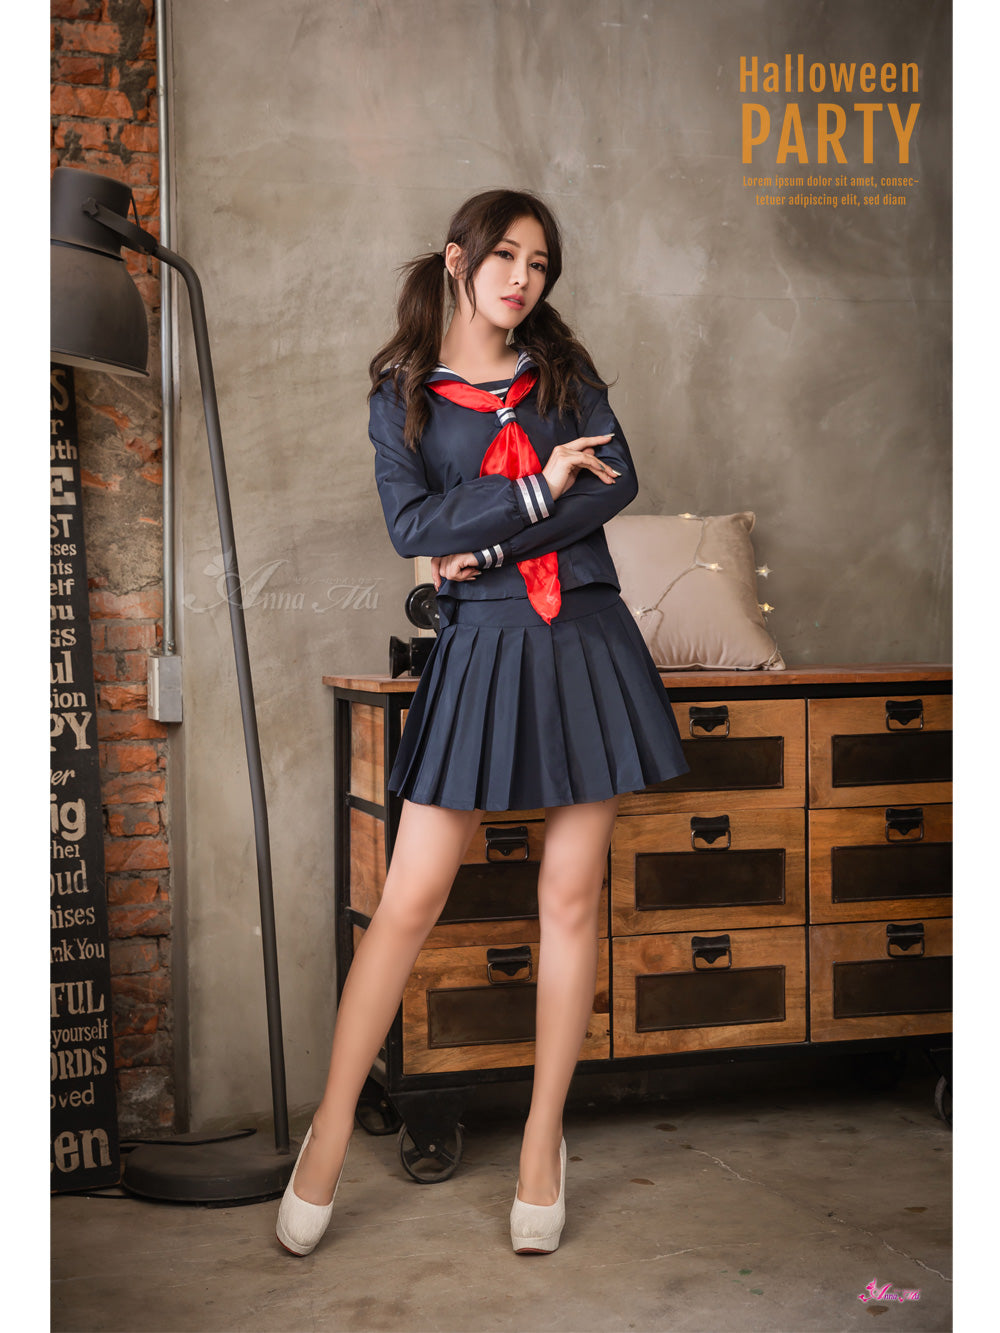 Lingeriecats Halloween Classic Blue School Student Girl Uniform with Red tie in 3 Pieces. - LingerieCats